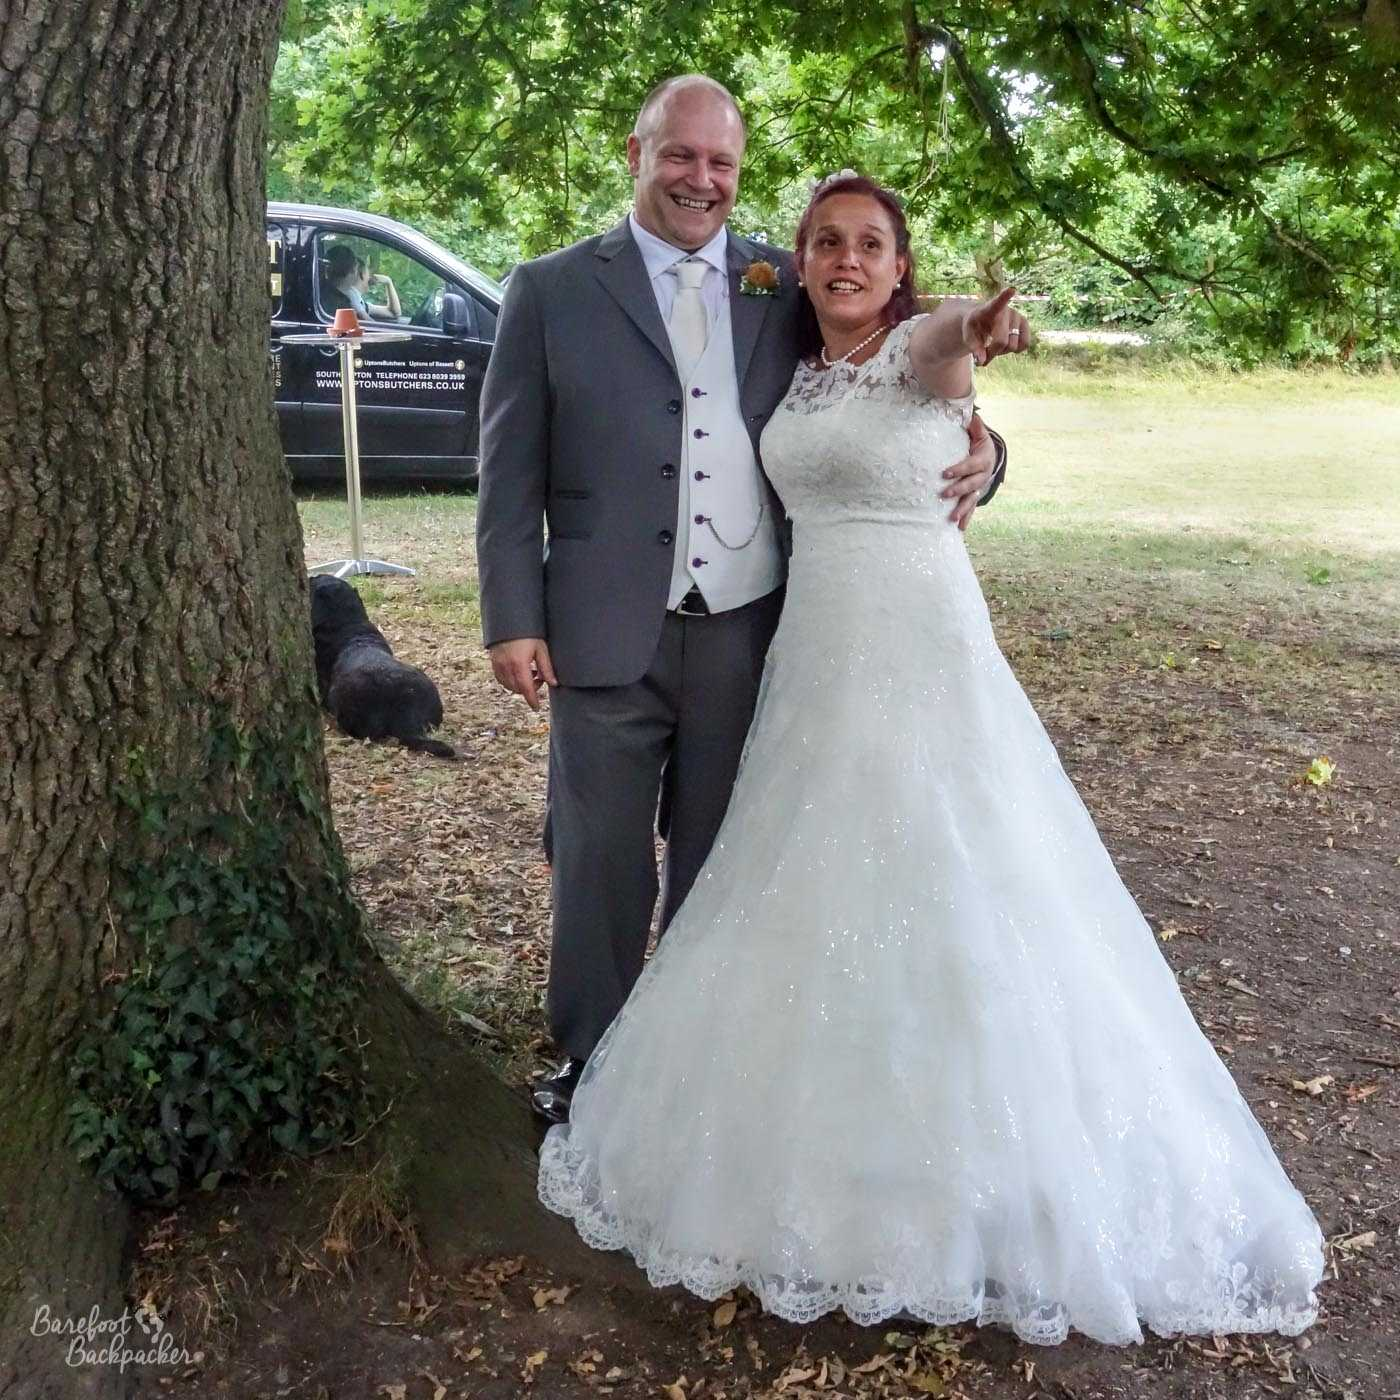 A just-married heterosexual couple – the man in a suit, the woman in a white wedding dress – standing under a tree. The woman is pointing towards the camera.